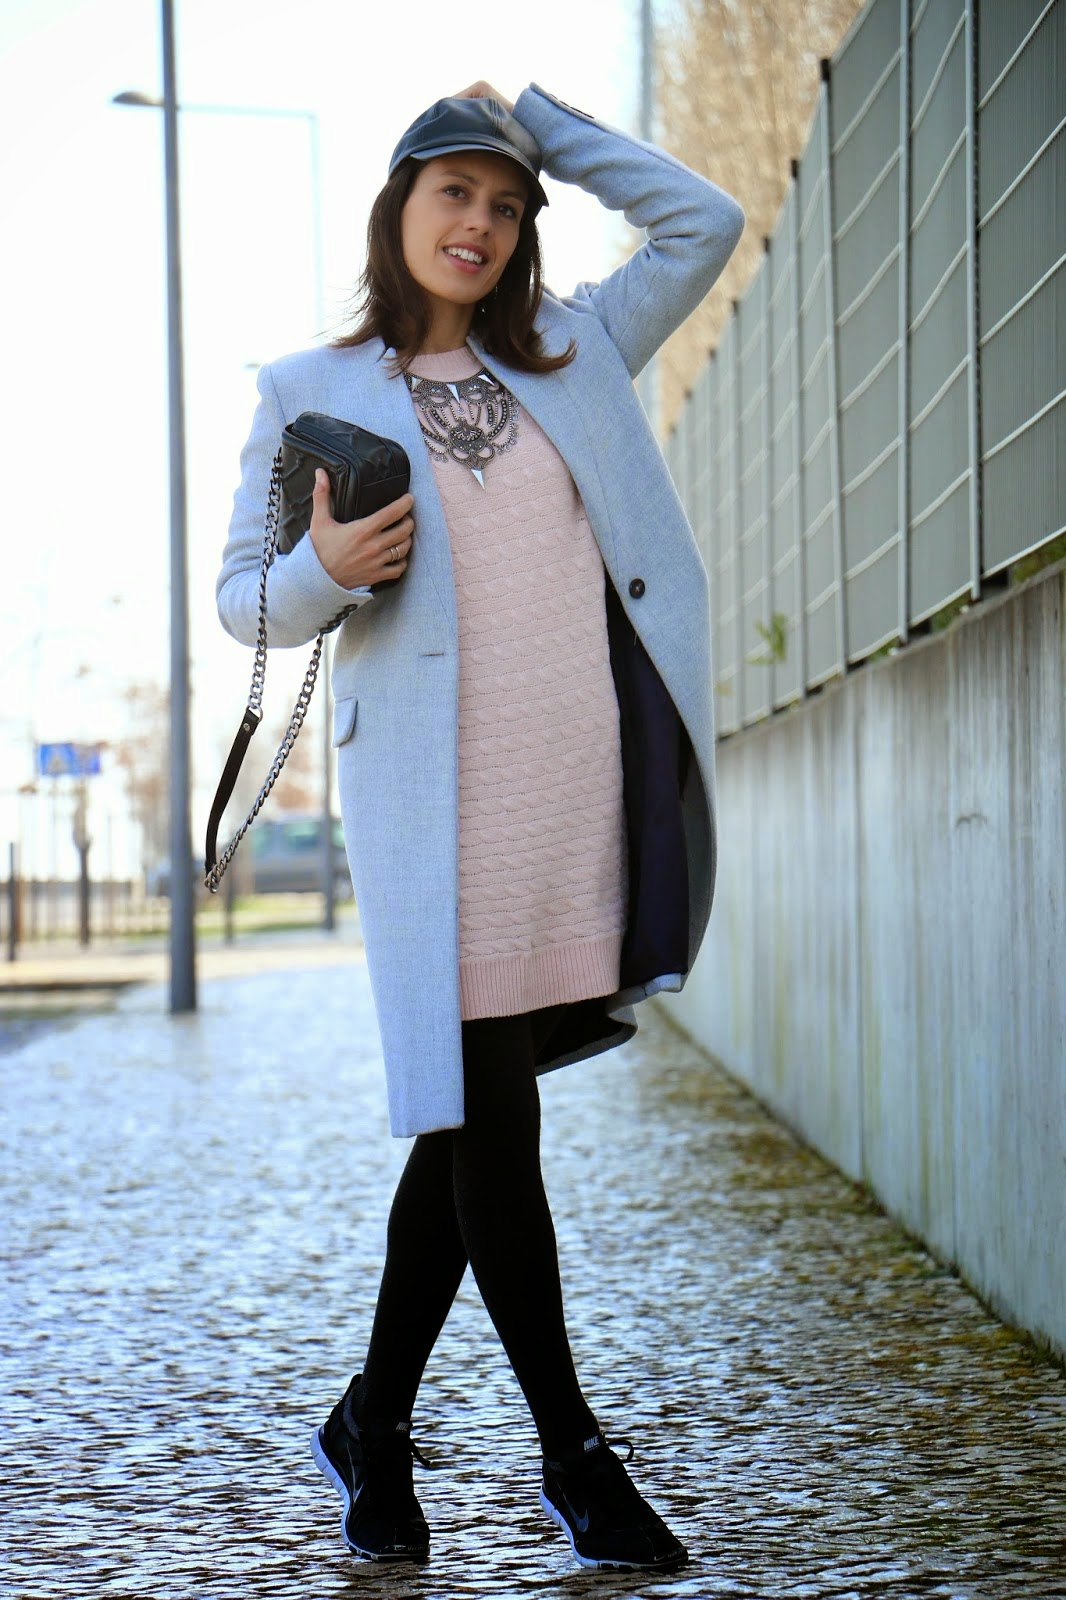 http://ilovefitametrica.blogspot.pt/2015/01/pink-knit-dress.html